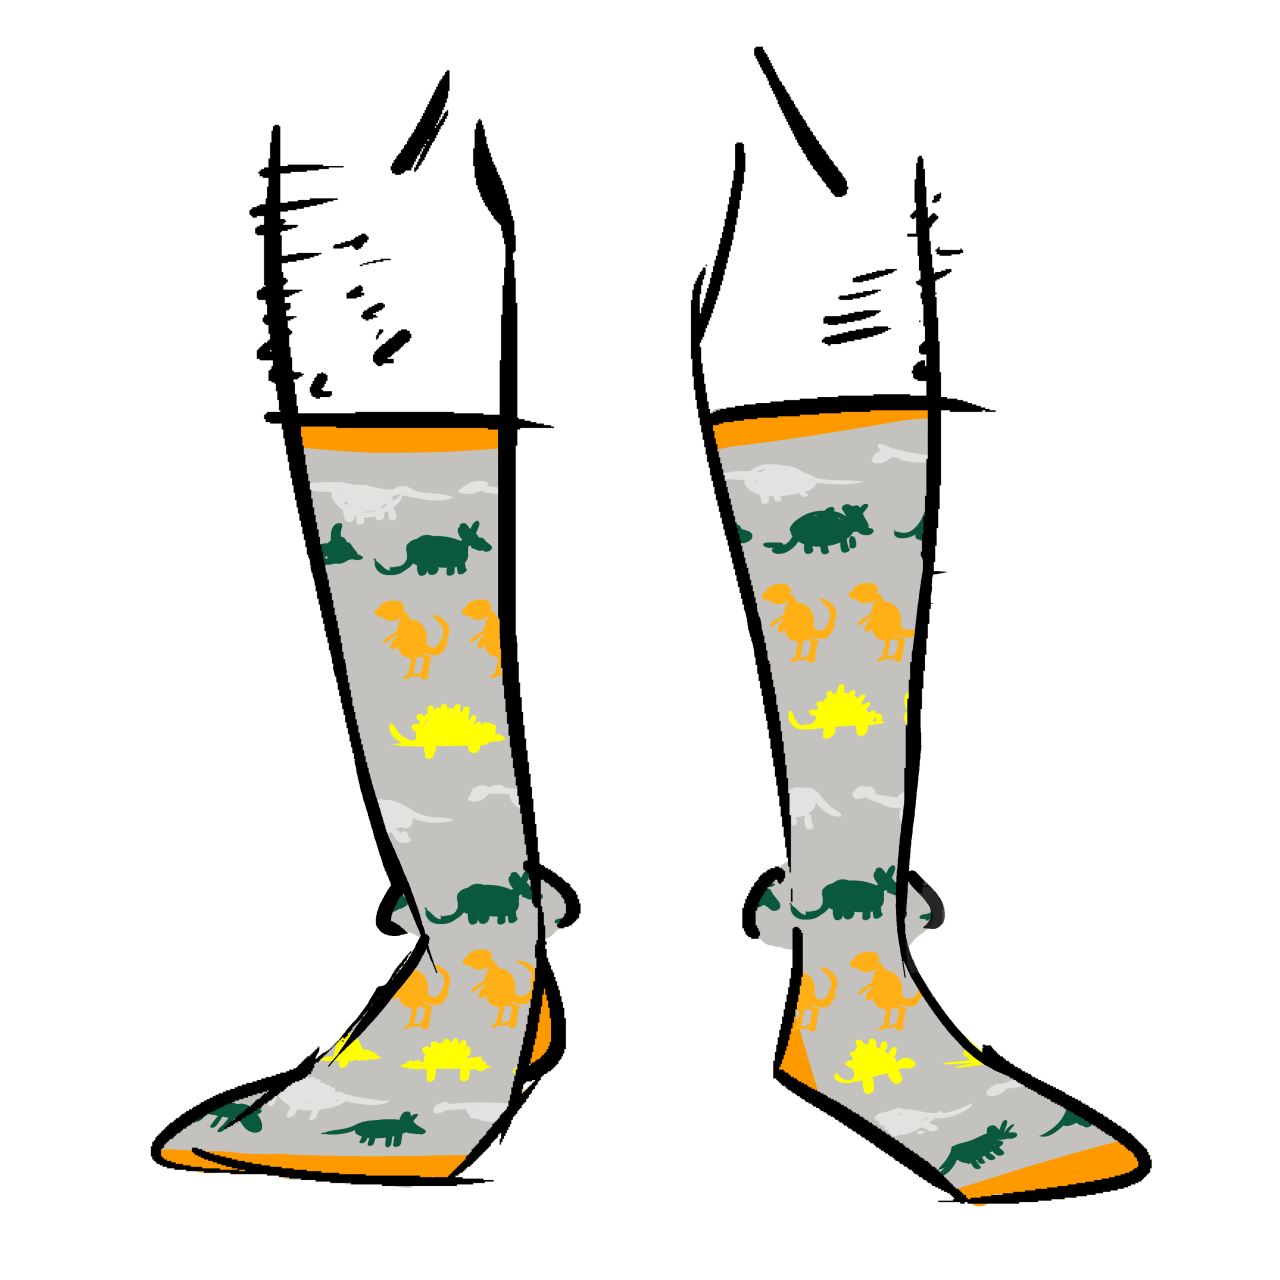 Grey socks with silhouettes of dinosaurs on them. Dinosaurs are green, white, orange, and yellow.